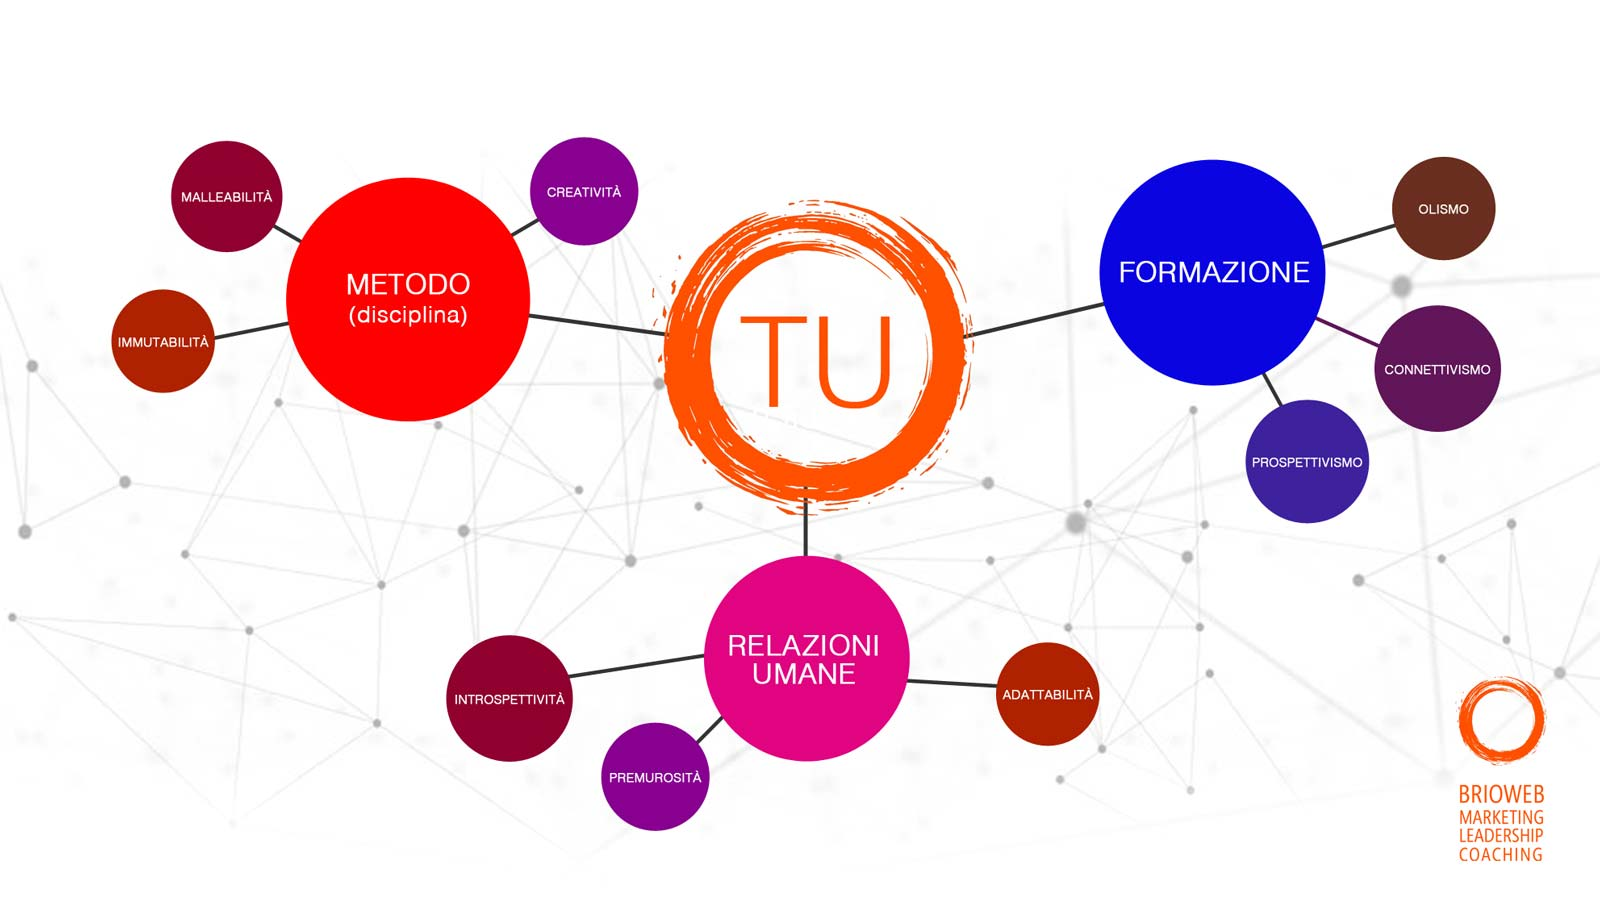 Il DNA di Agenzia marketing e neuromarketing | Francesco Russo consulente marketing | BrioWeb consulenza marketing  e seo Treviso Padova Venezia